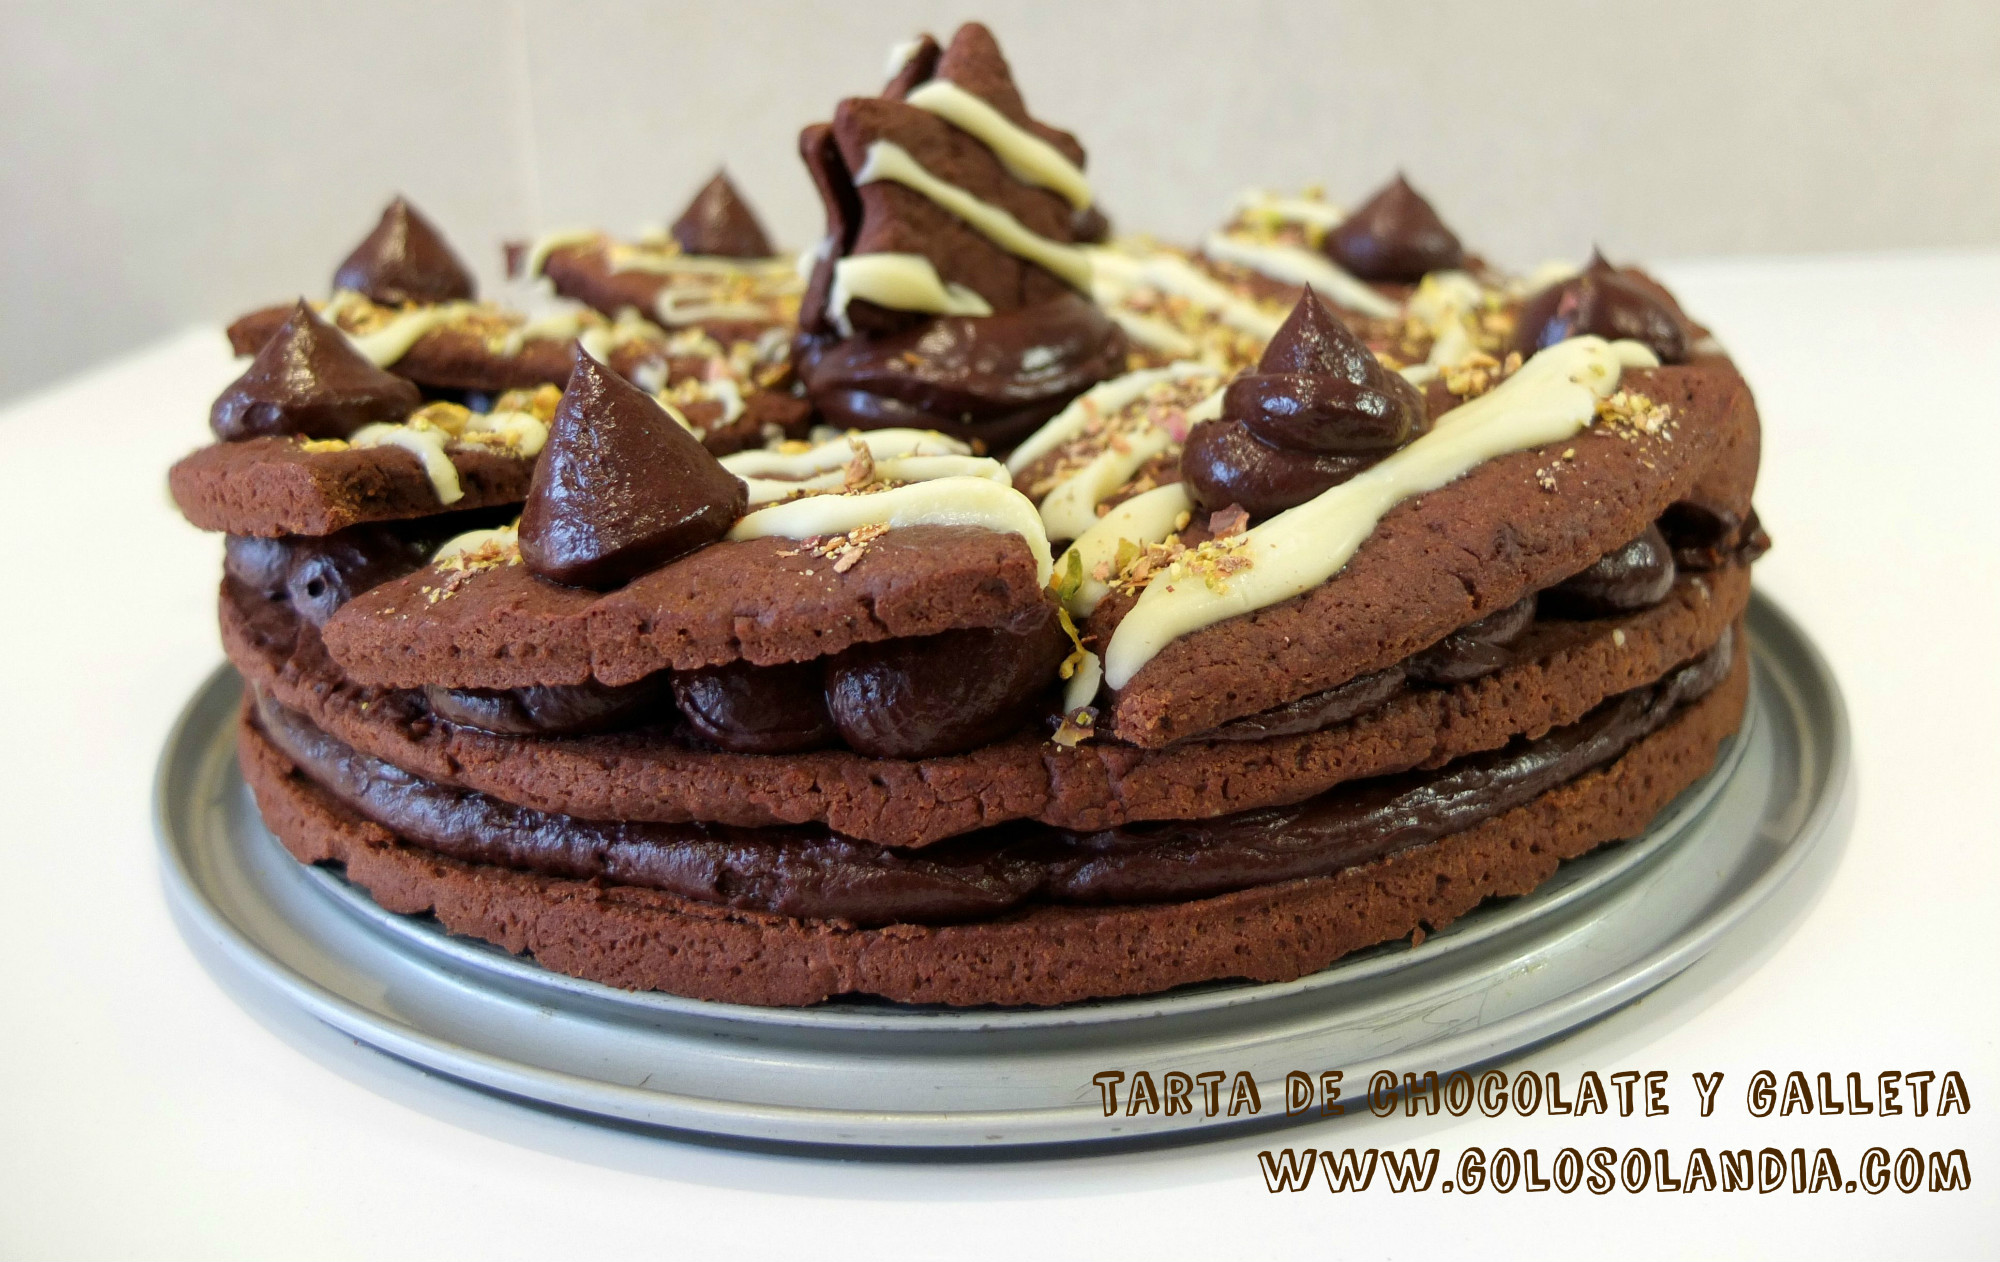 Tarta de chocolate y galleta